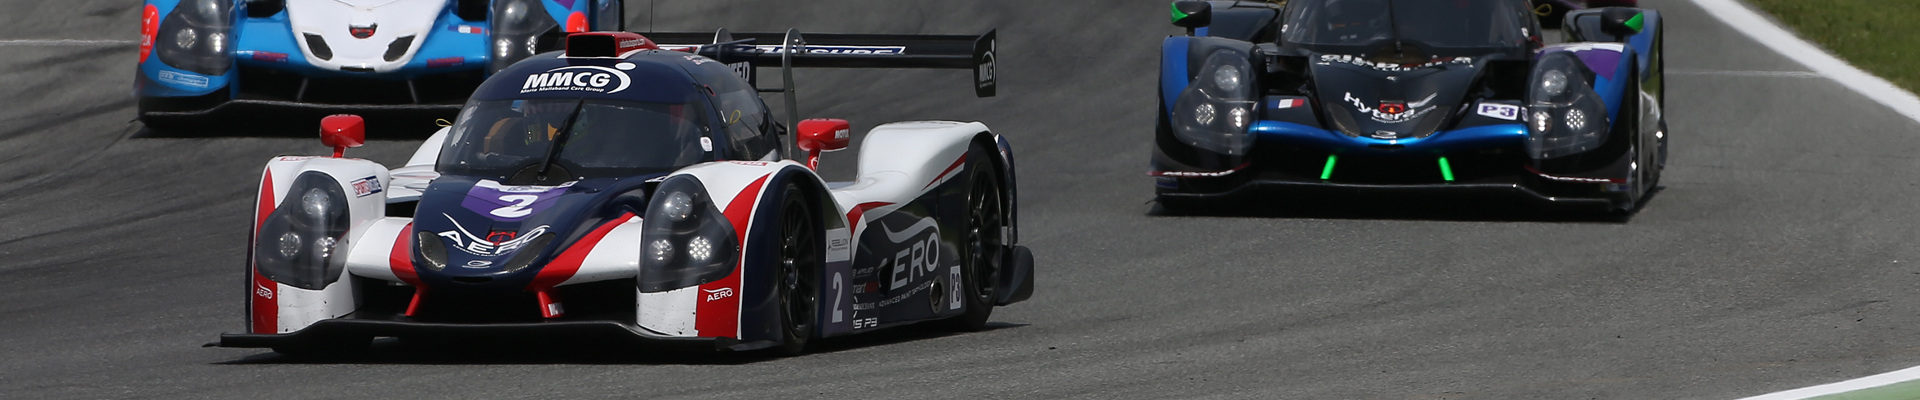 United Autosports will compete in both the LMP2 and LMP3 classes at ALMS